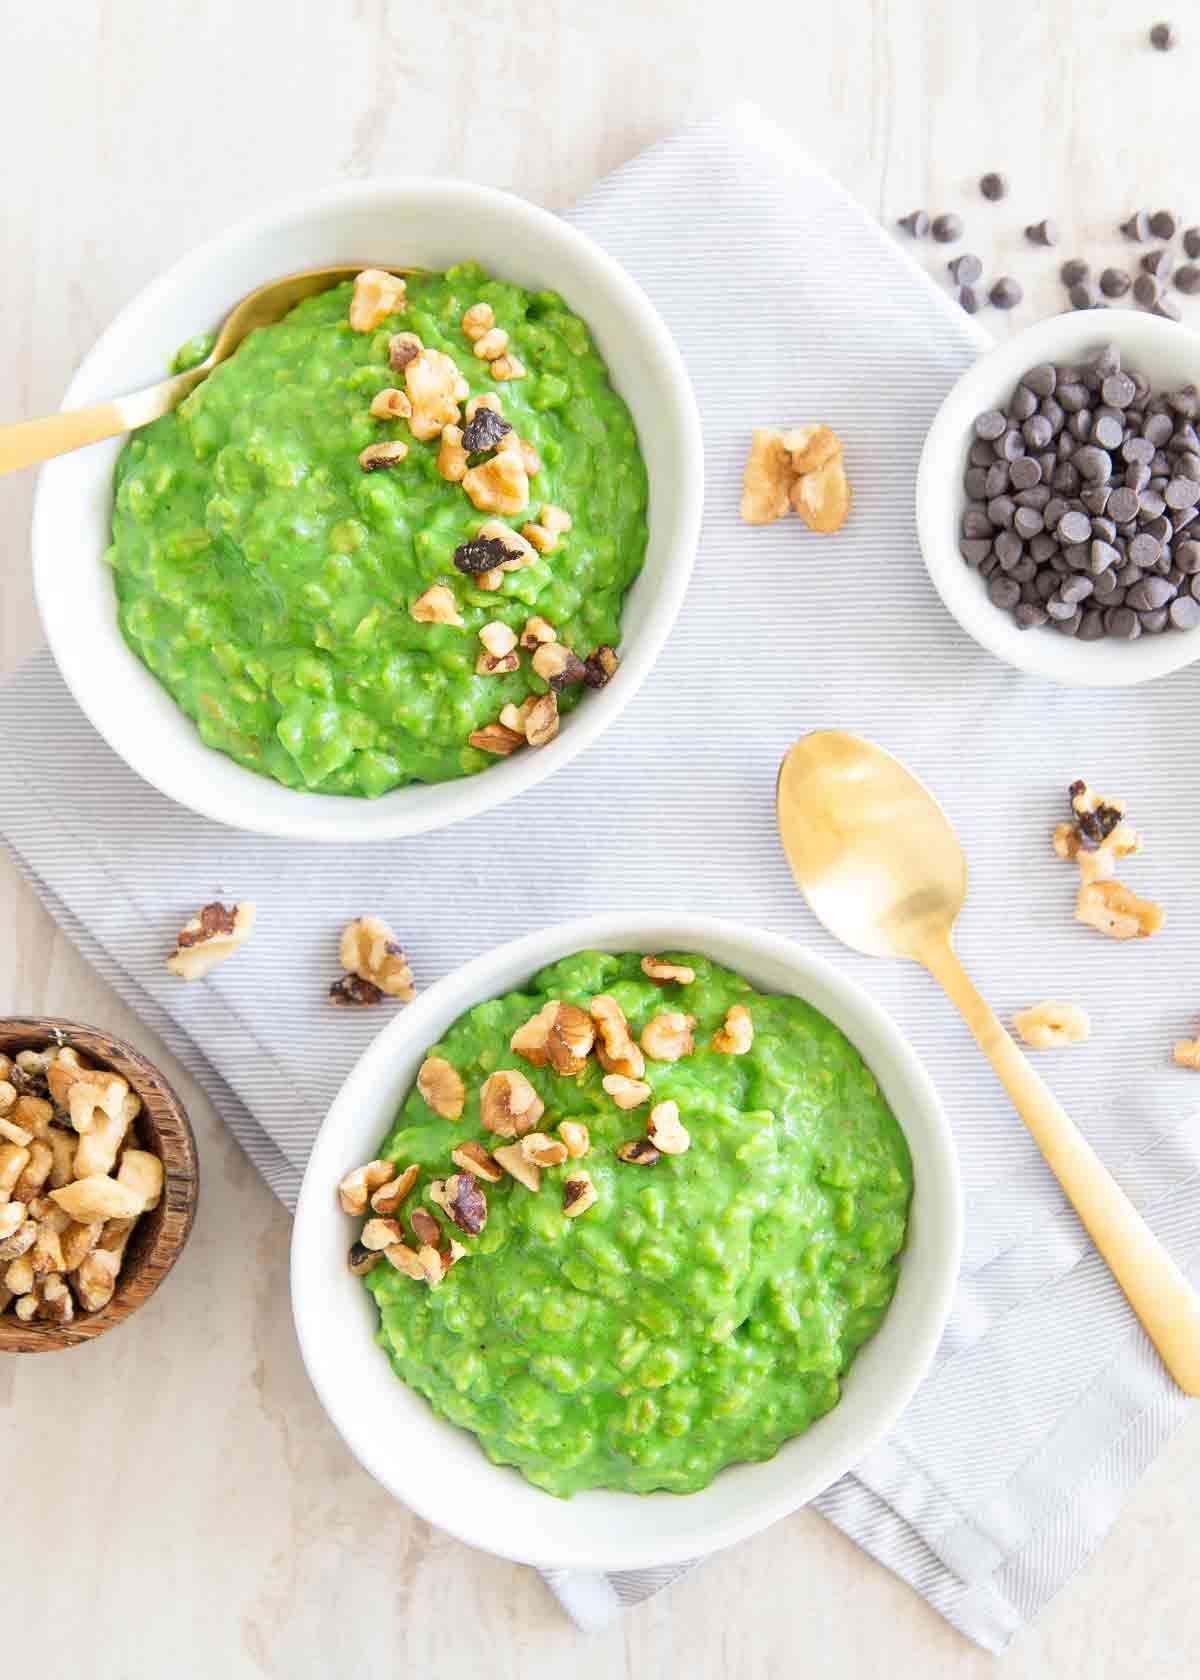 This spinach oatmeal recipe is healthy, delicious and a fun way to celebrate St. Patrick's Day with all real-food, natural ingredients.